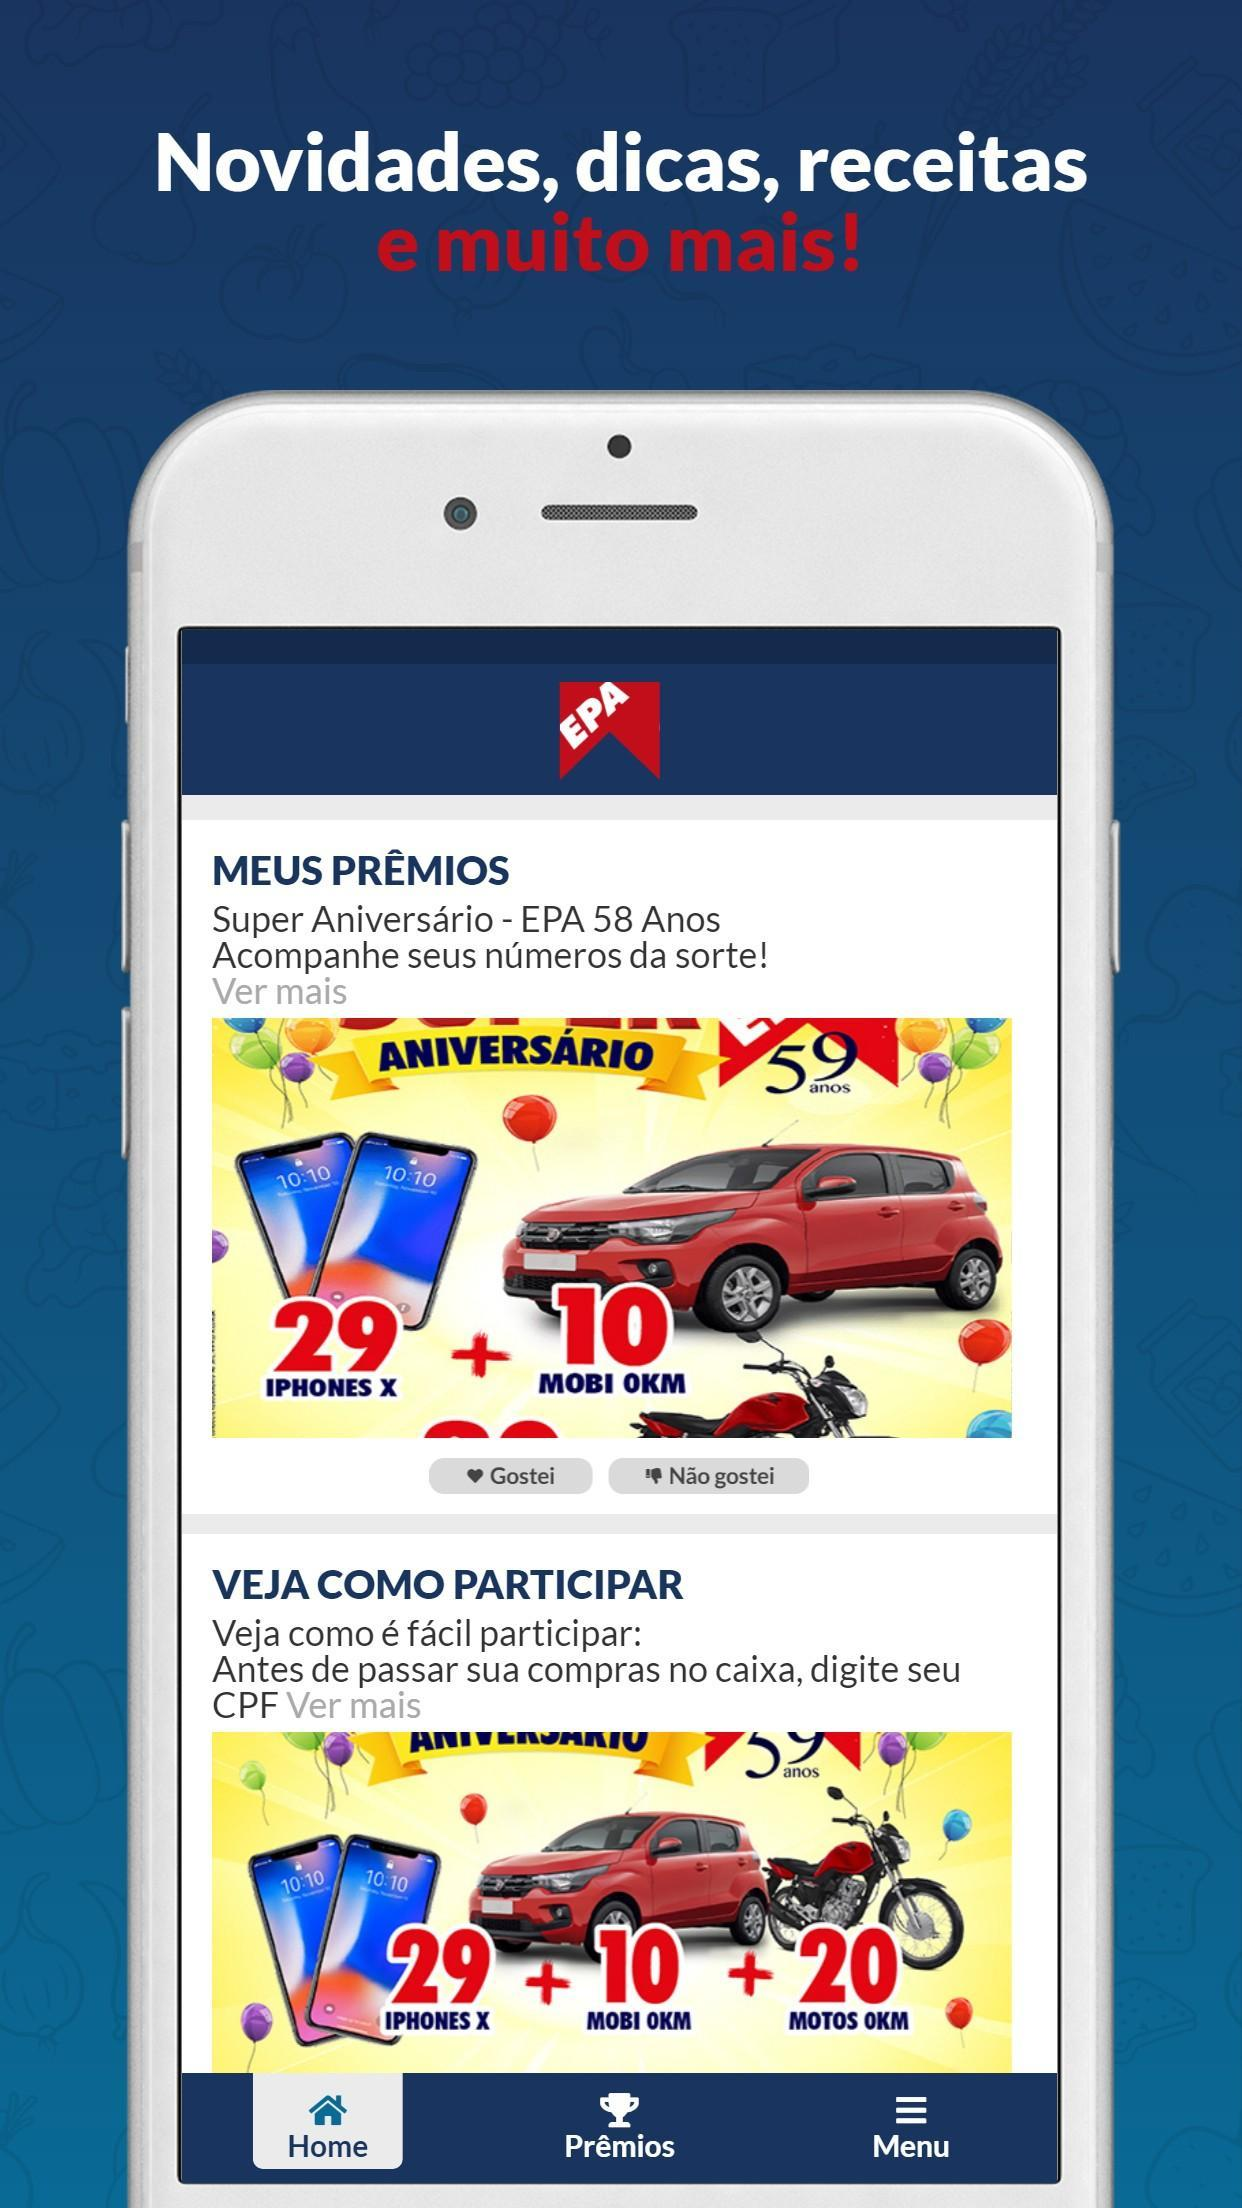 Epa 59 Anos For Android Apk Download